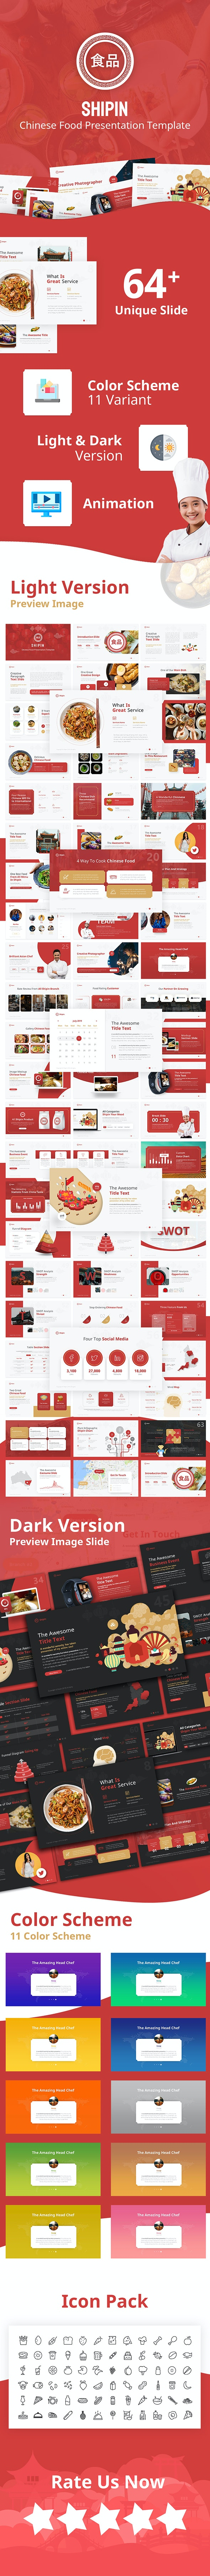 Shipin - Chinese Food Presentation PowerPoint Template - PowerPoint Templates Presentation Templates